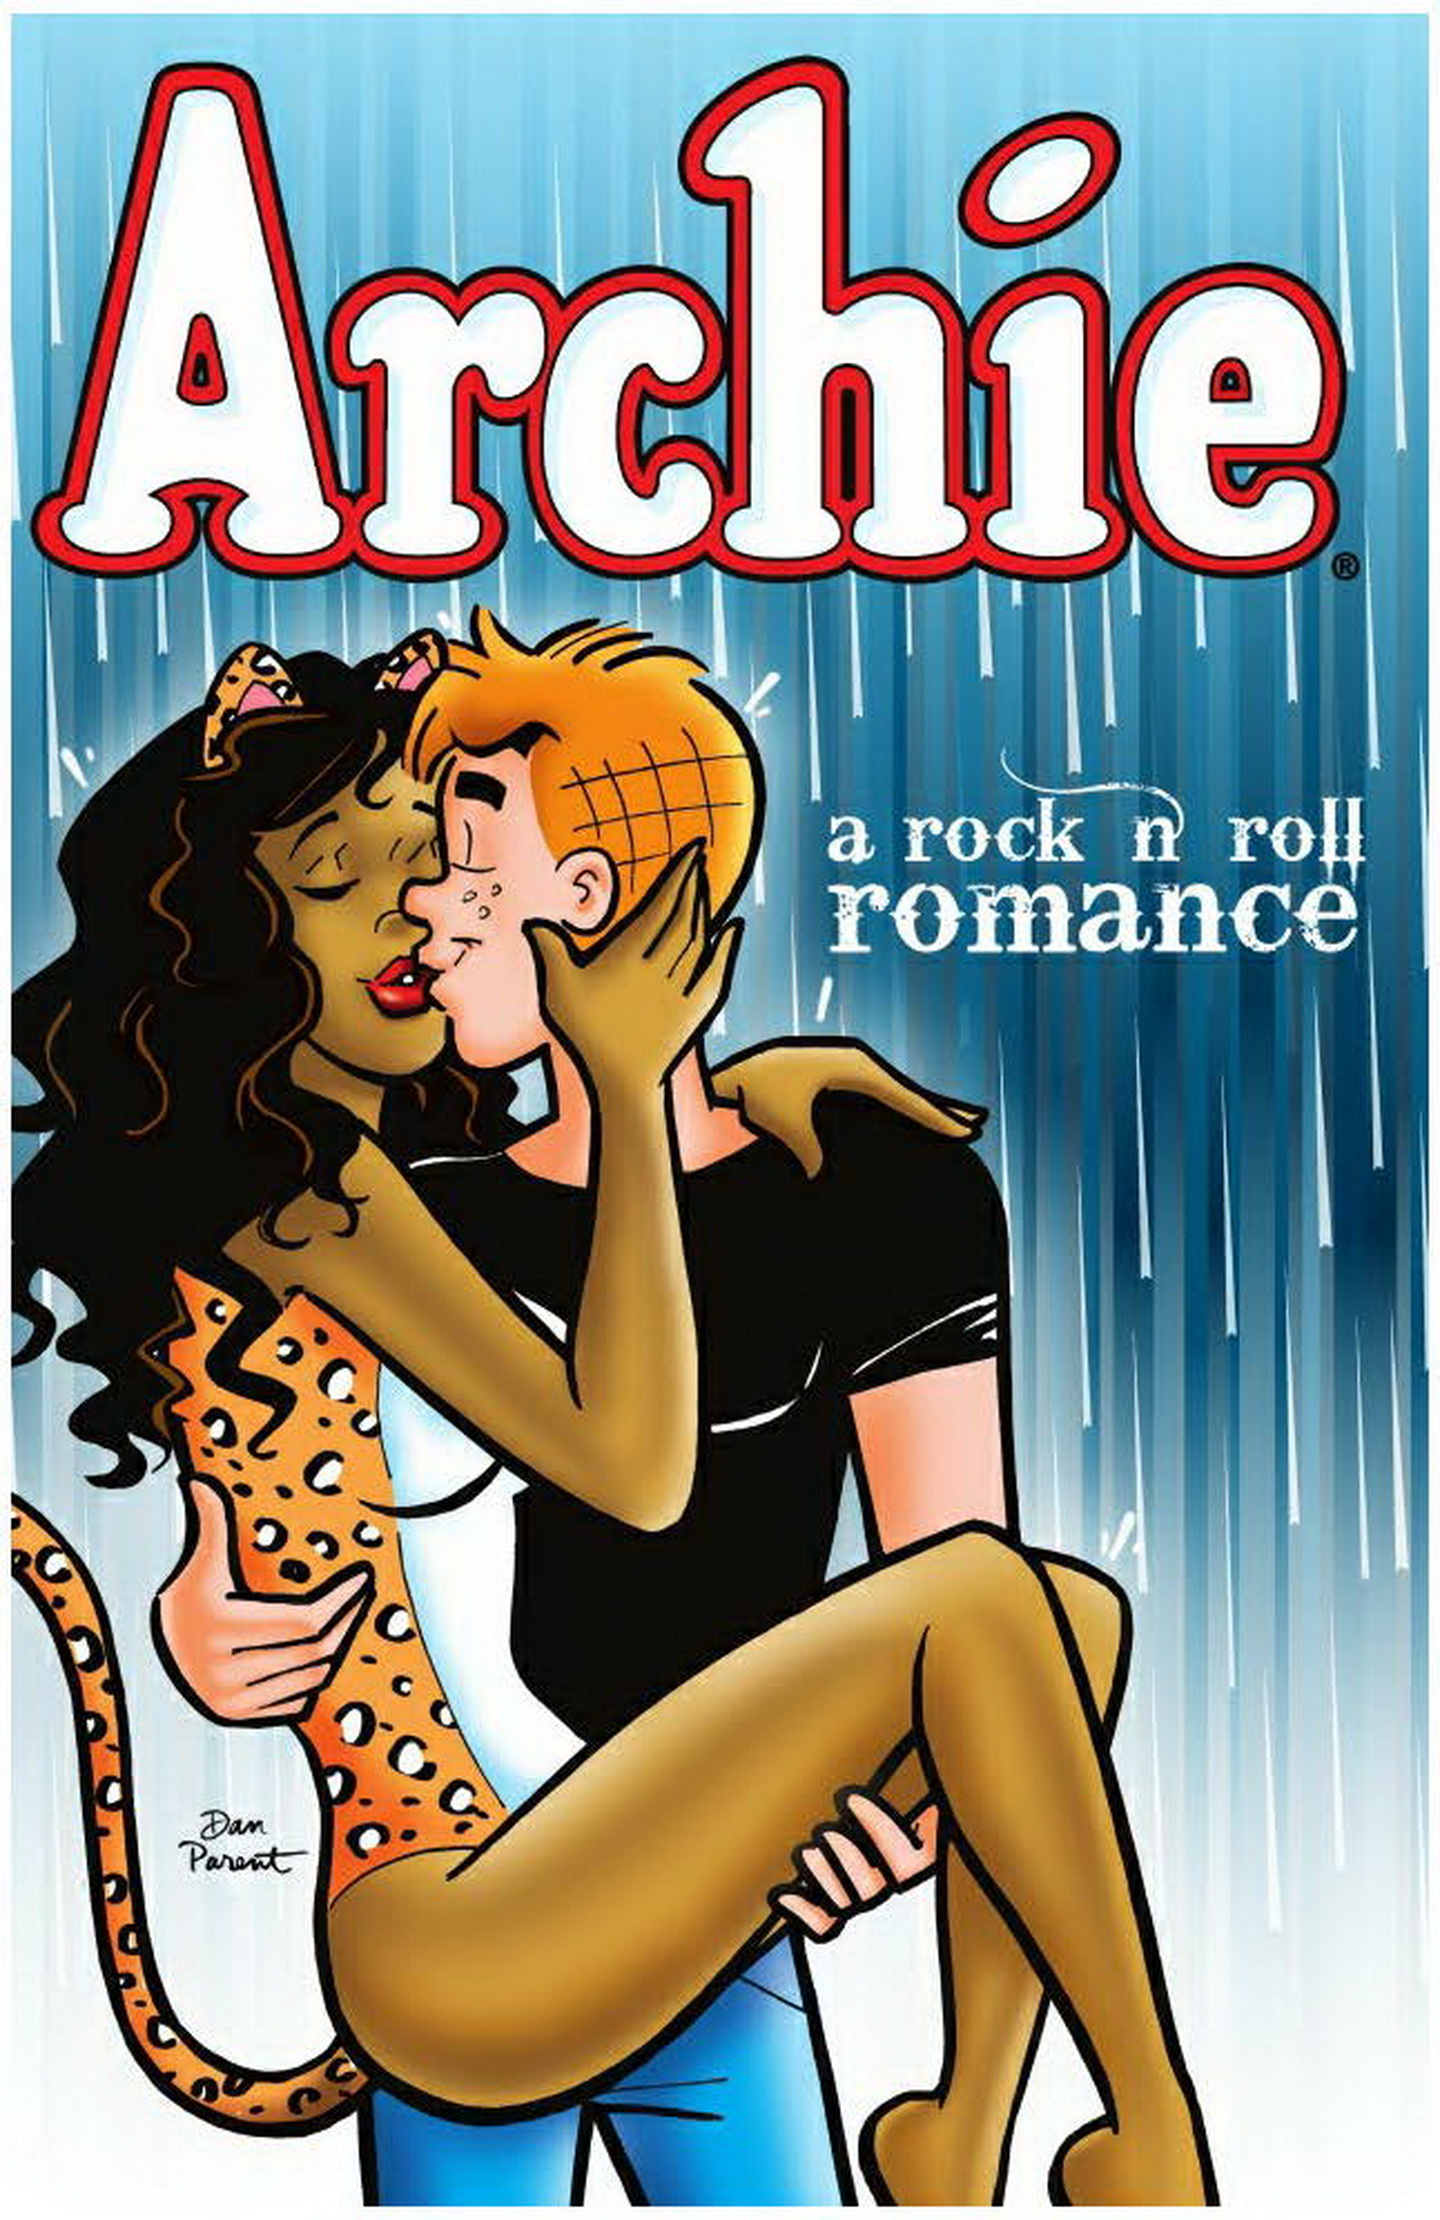 Read online Archie: A Rock 'n' Roll Romance comic -  Issue #Archie: A Rock 'n' Roll Romance Full - 1